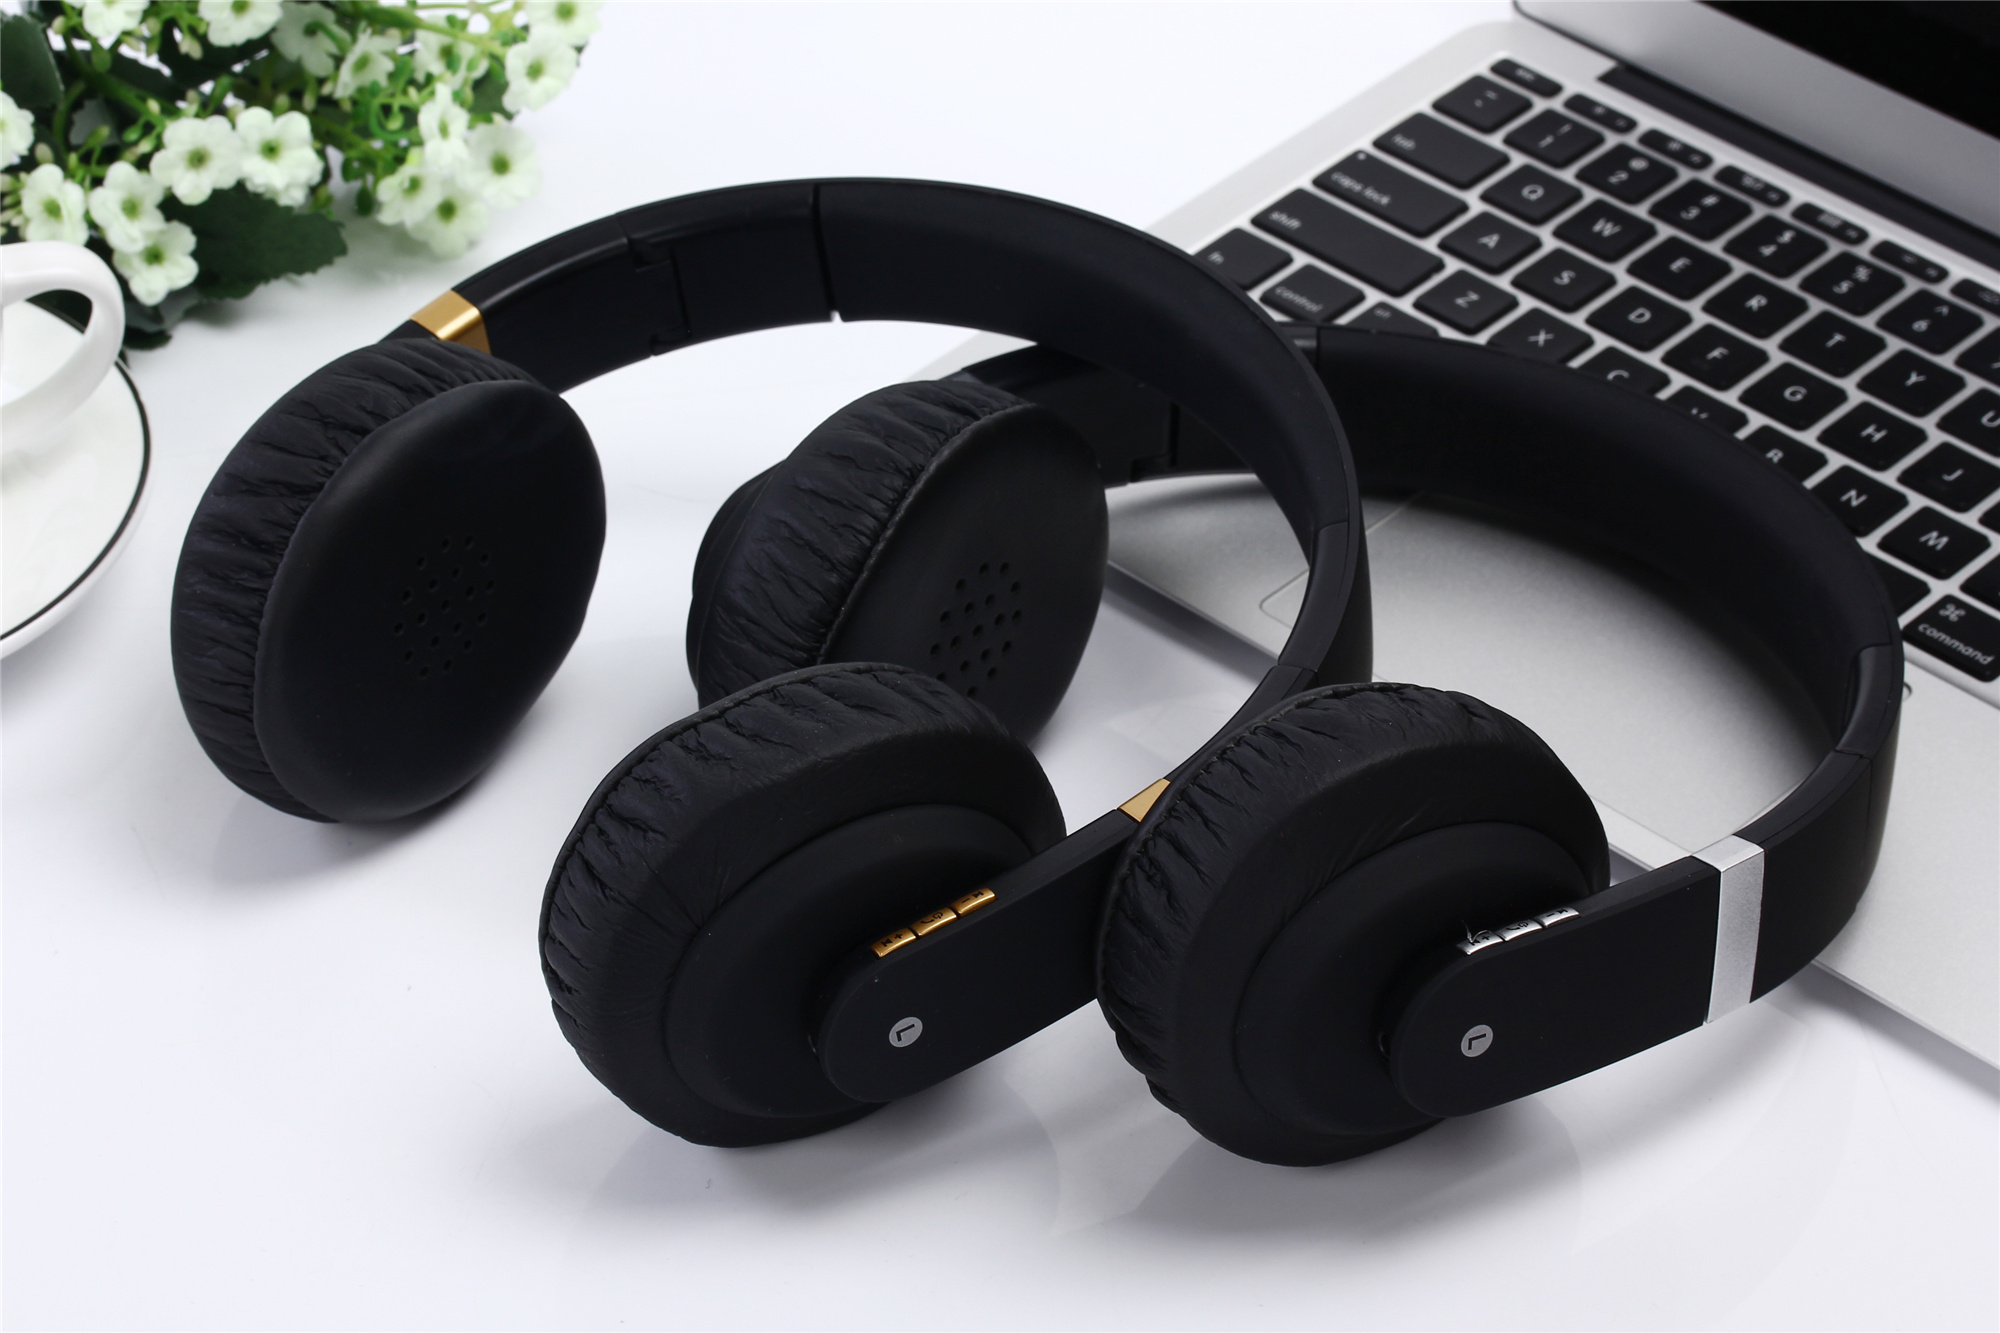 Symrun Foldable Noise Reduction Music Earphones Handsfree Call With Mic Headset For Iphone Xiaomi New Bluetooth Headphones remax bluetooth 4 1 wireless headphones music earphone stereo foldable headset handsfree noise reduction for iphone 7 galaxy htc